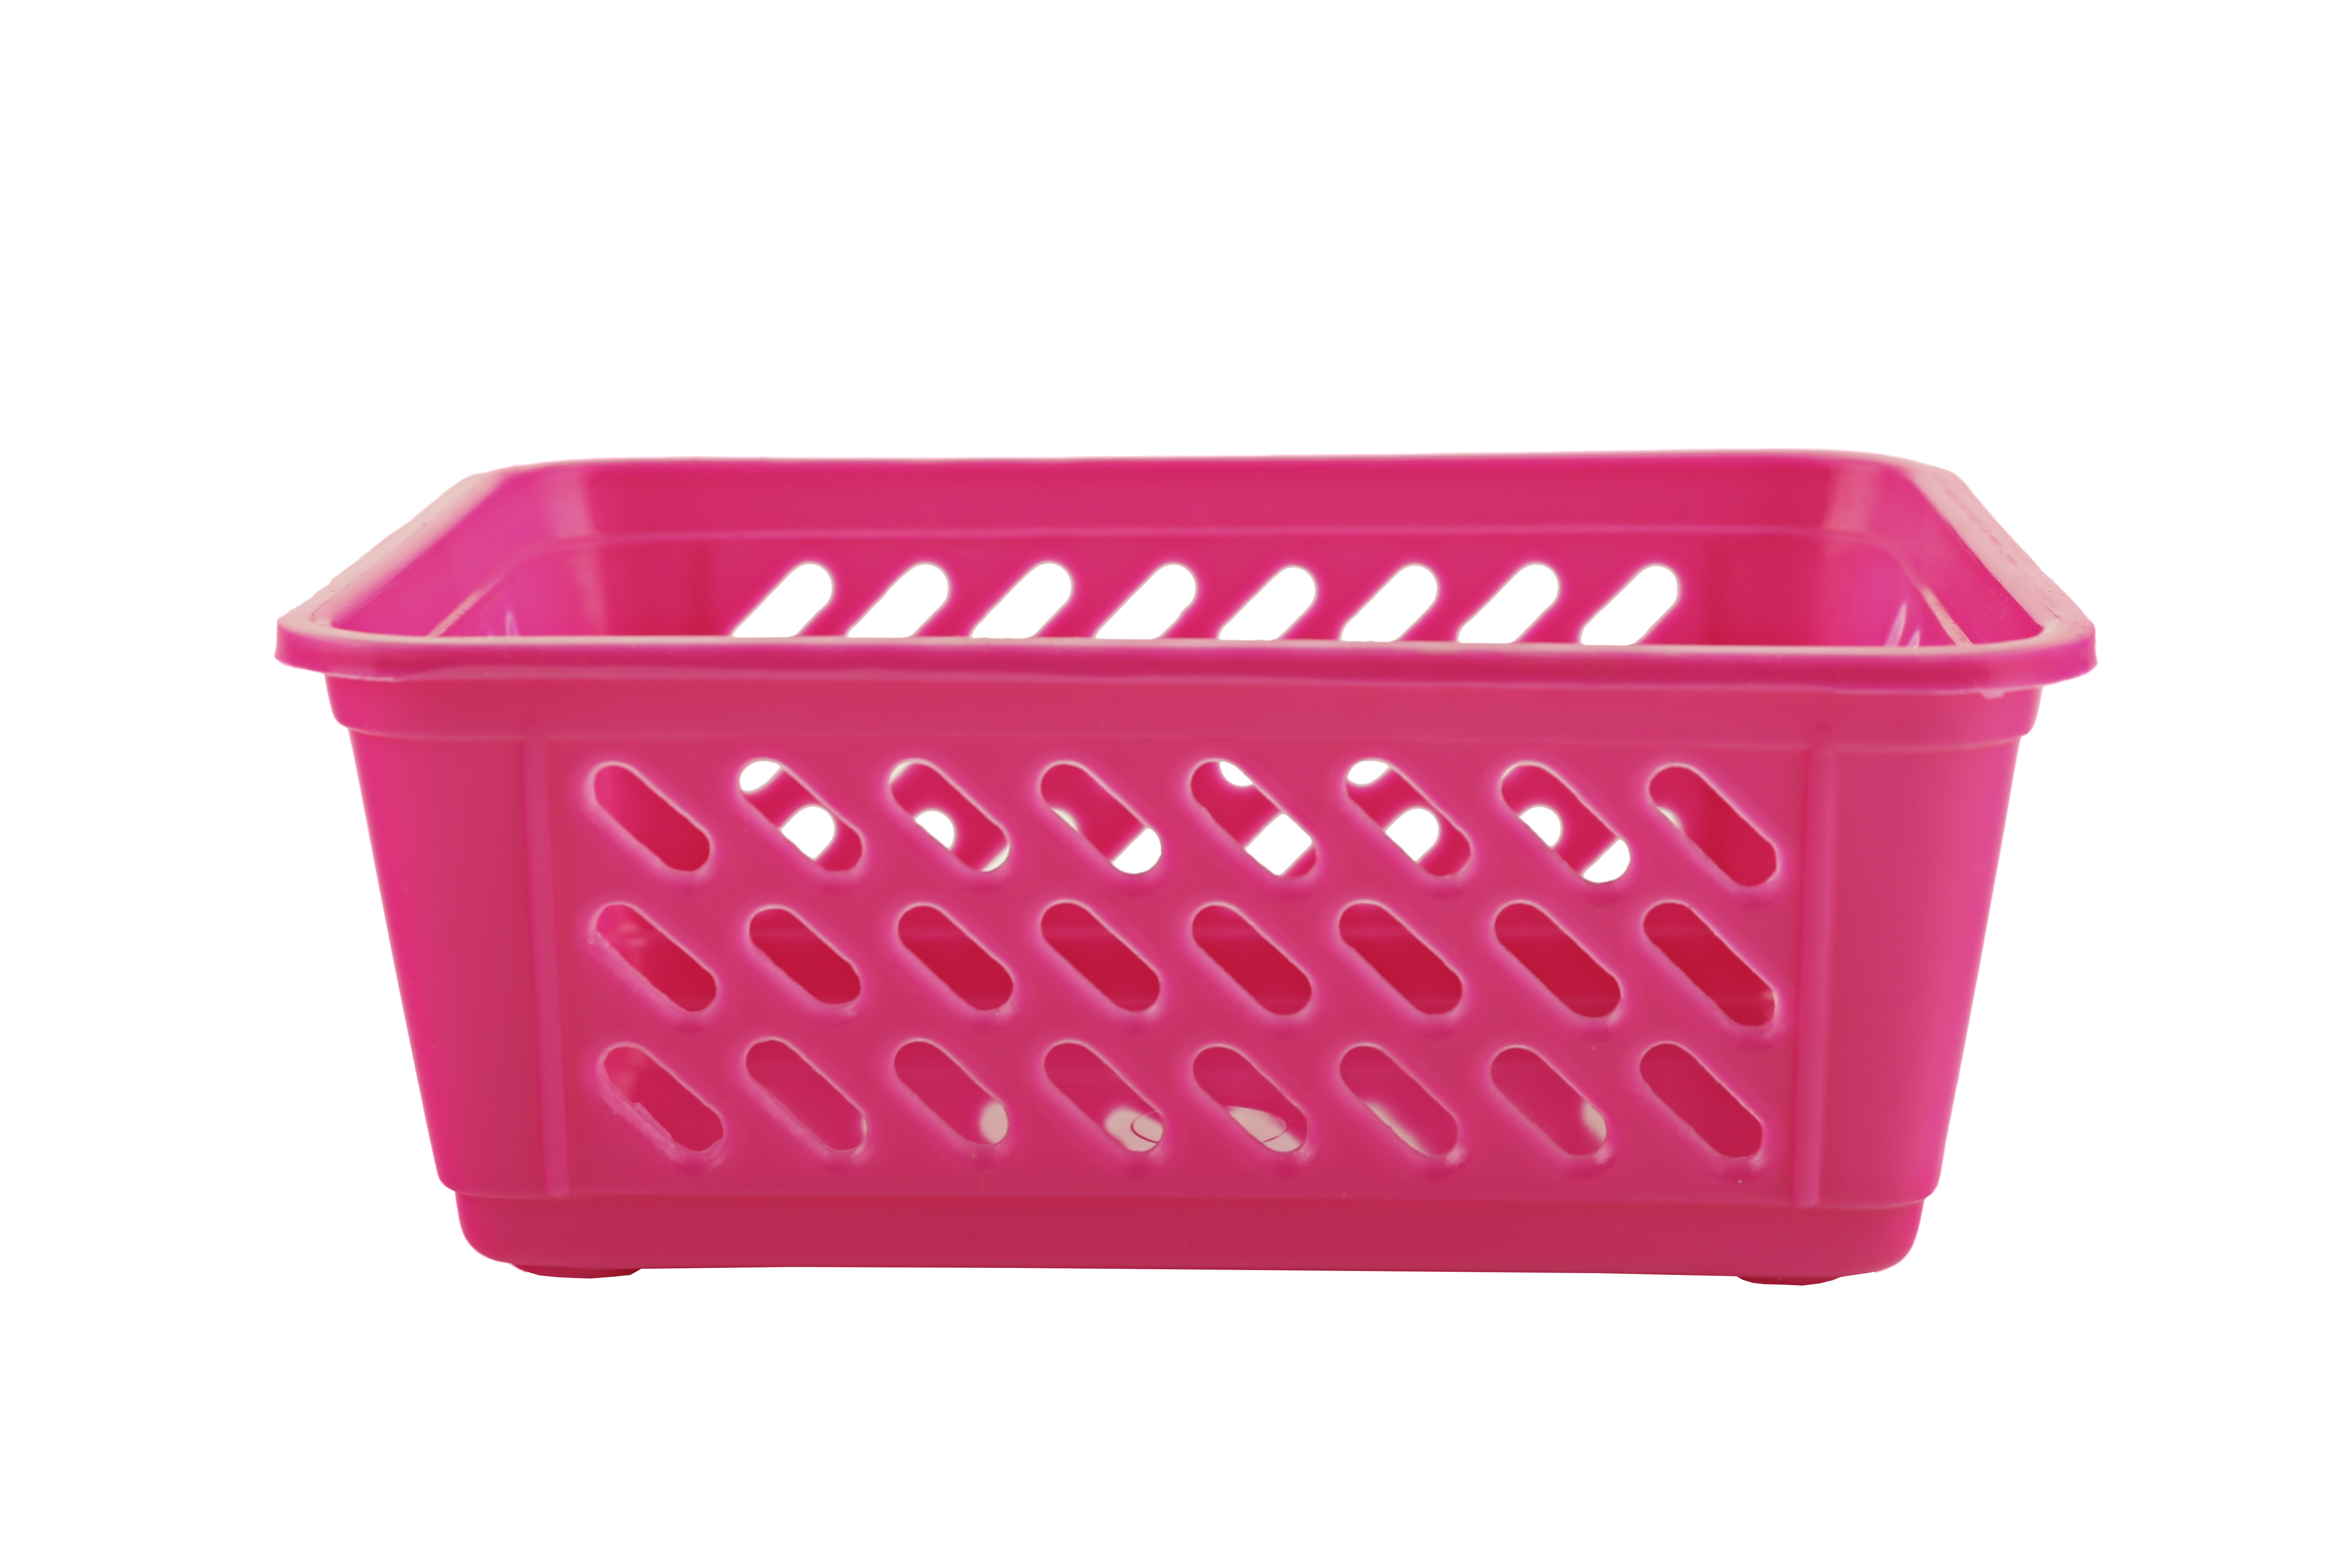 Sieve Multi Purpose Basket Plastic Kitchen Organizers in Pink Colour by Living Essence